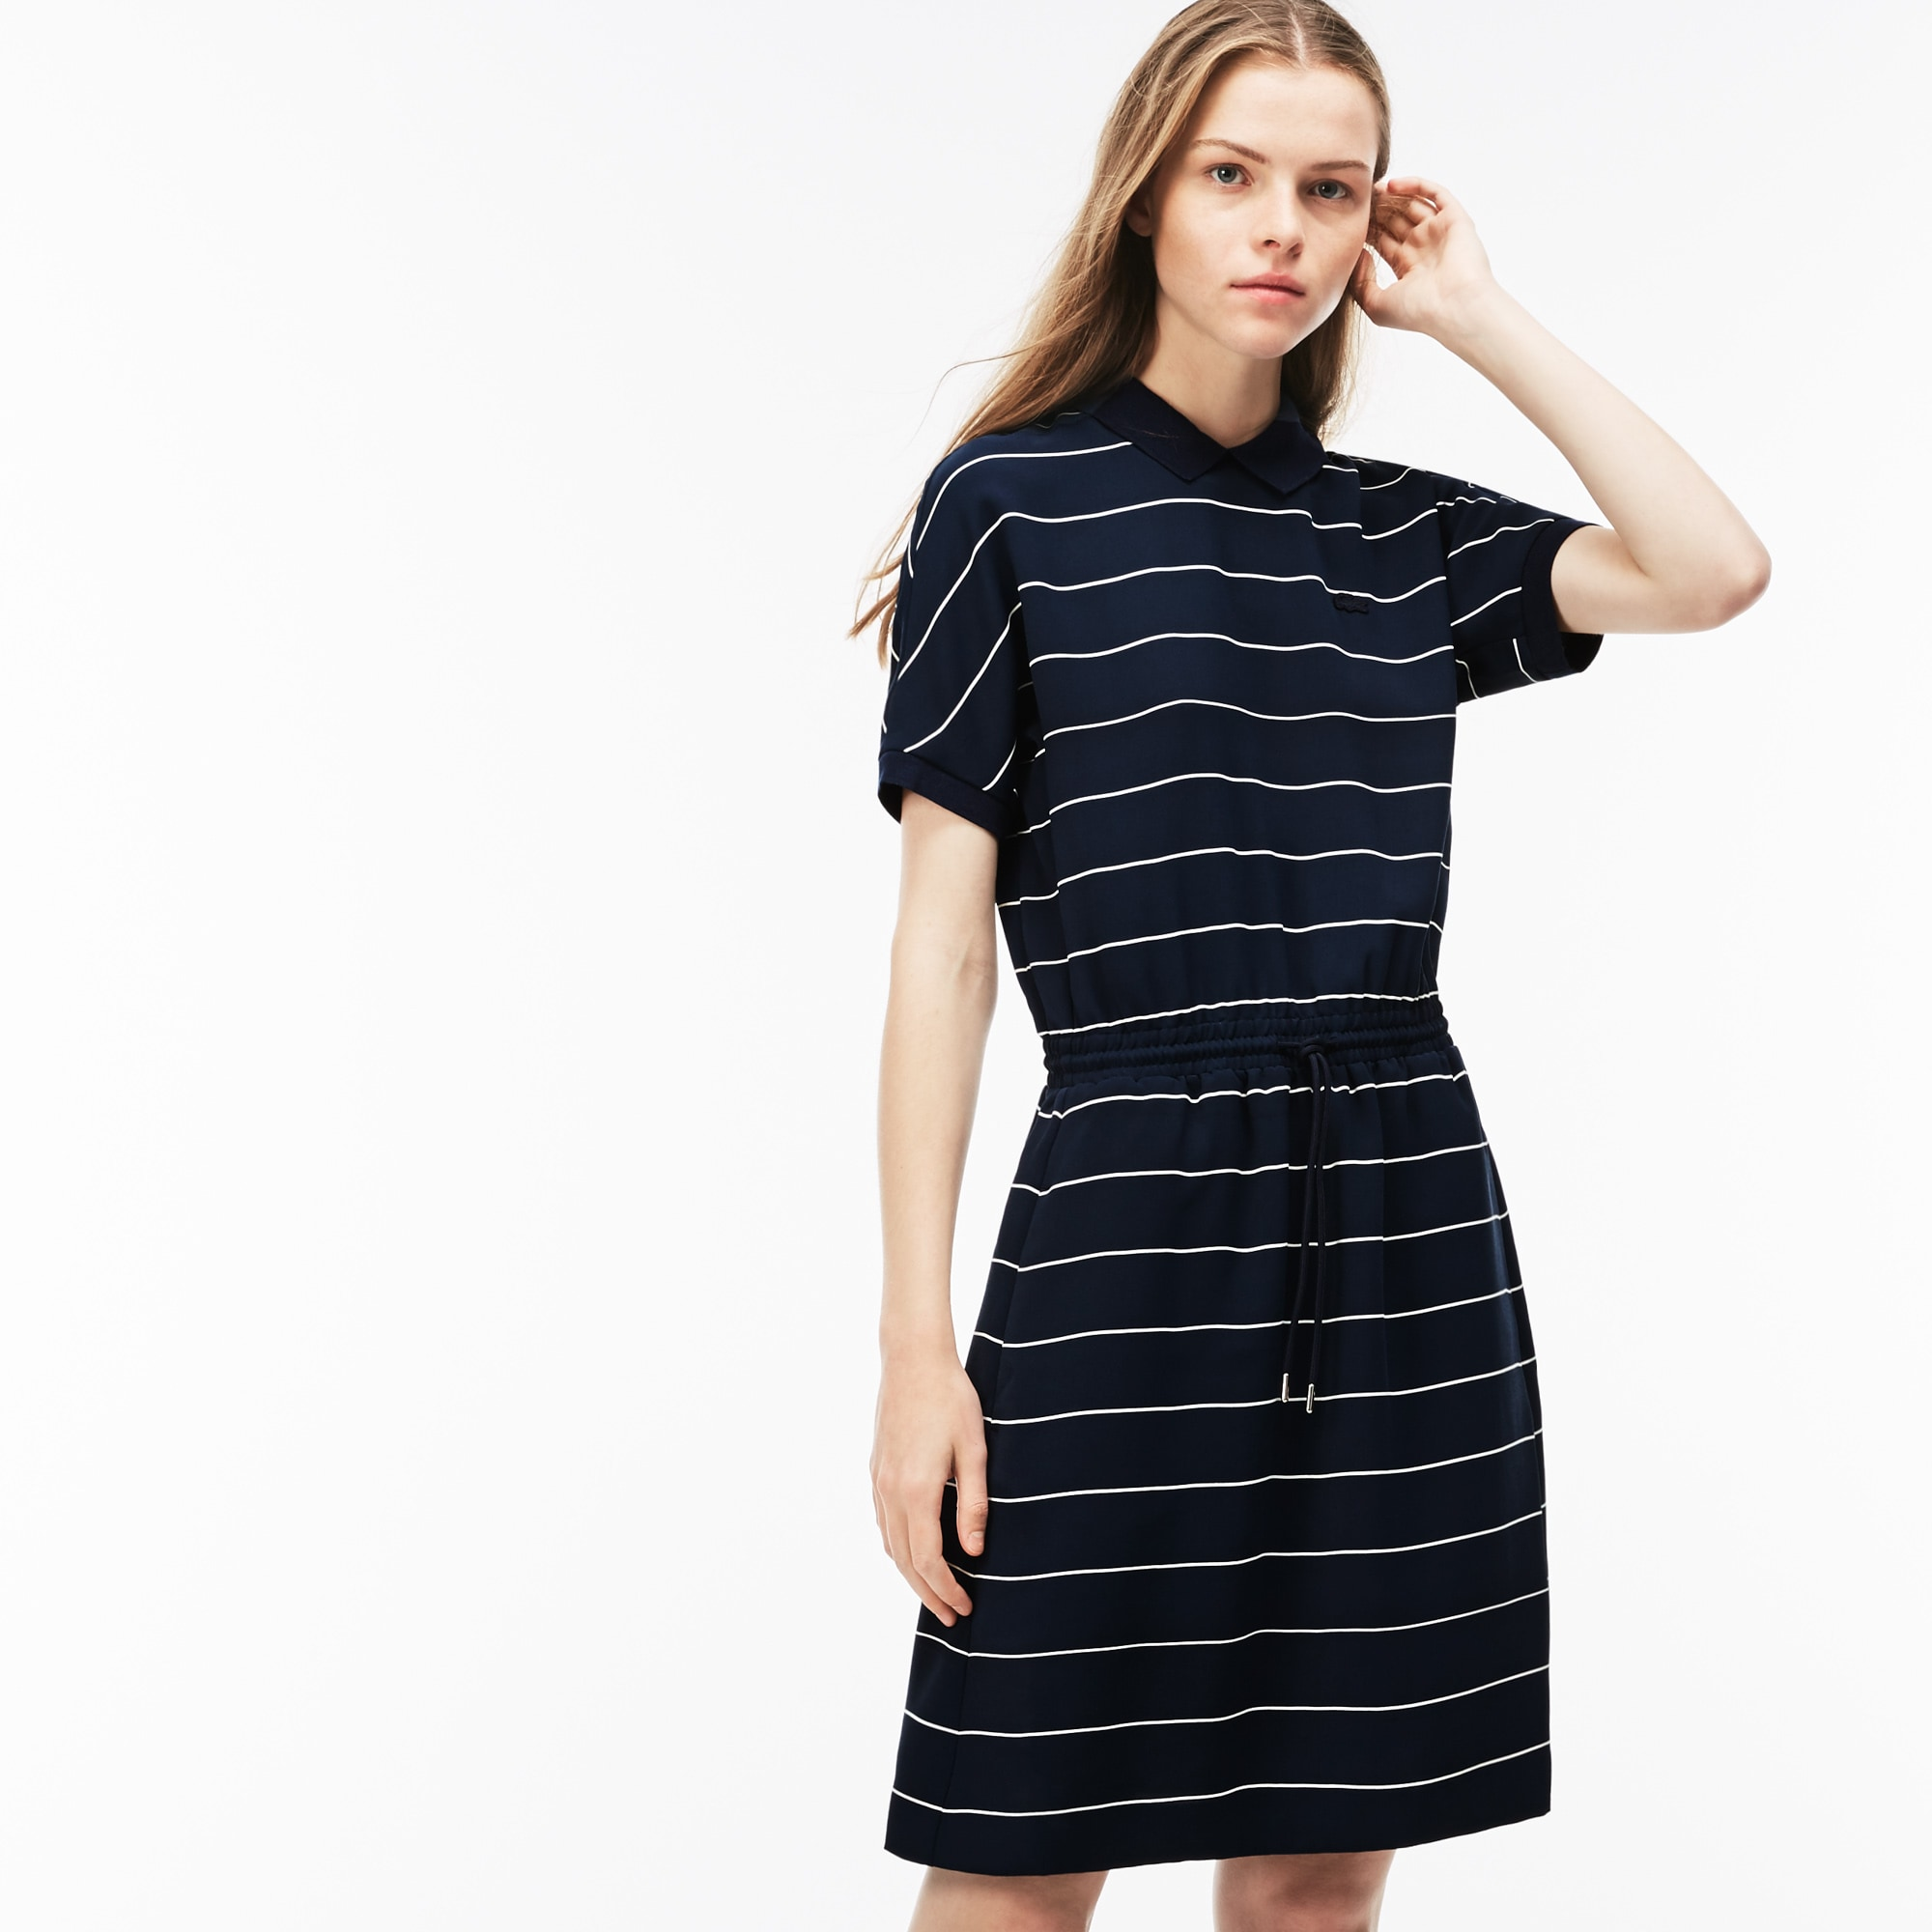 Women's Elasticised Waistband Flowing Striped Cady Knit Polo Dress